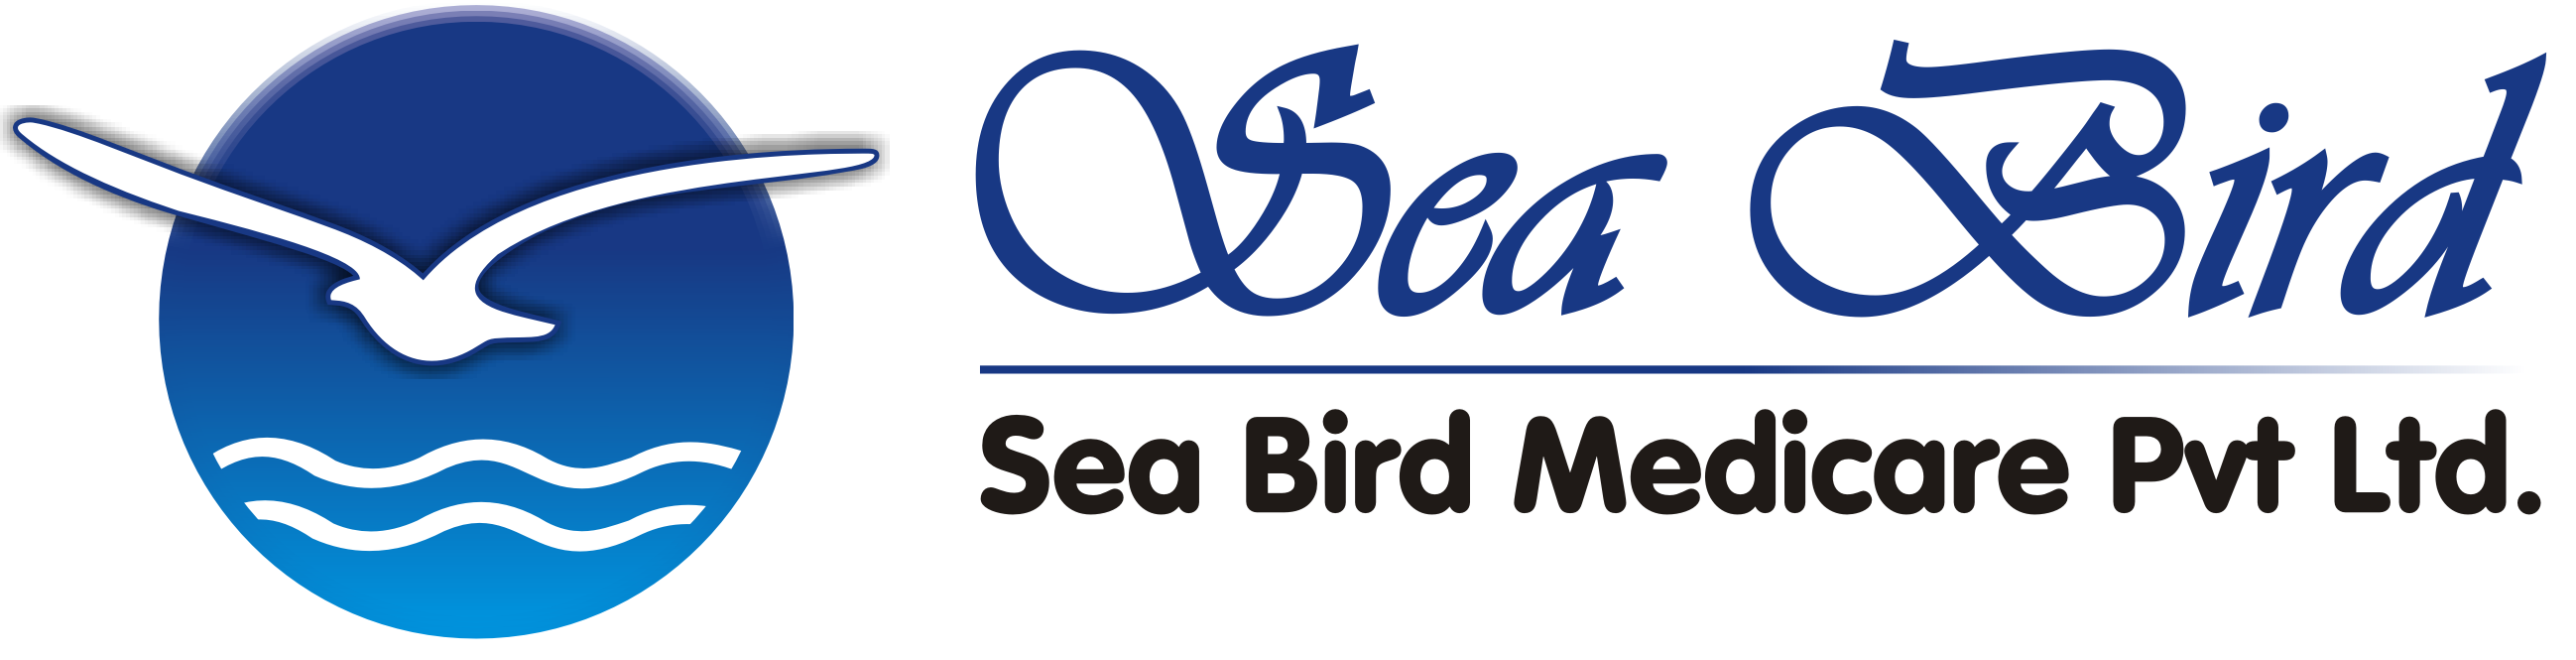 Sea Bird Medicare Pvt Ltd